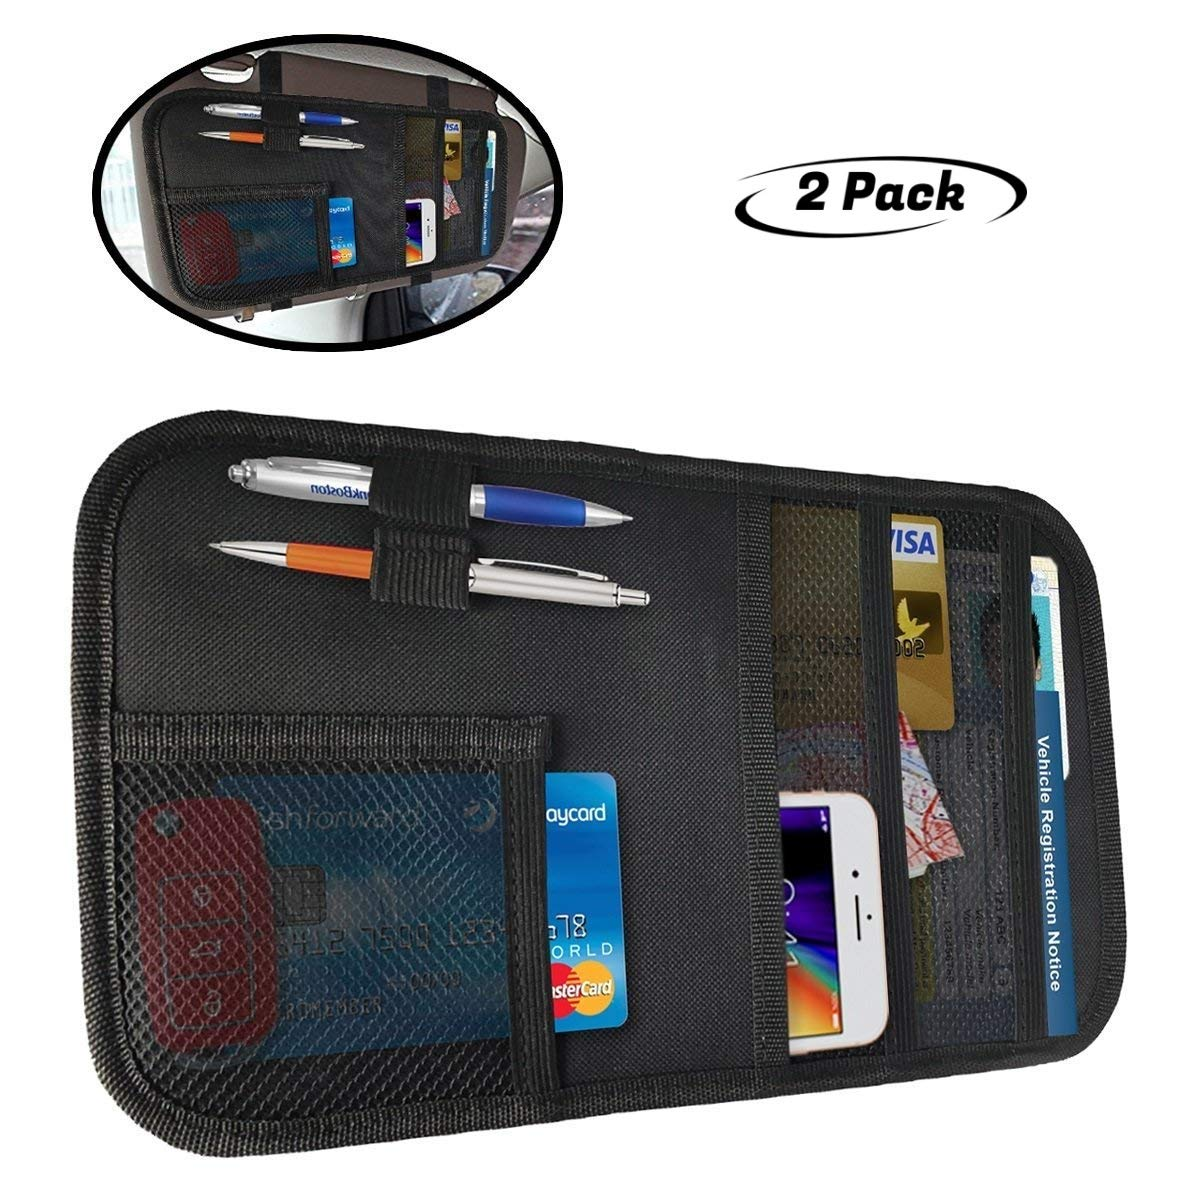 Interior Accessories Pocket Organizer 2724669060998 Auto Interior Accessories Pocket Organizer Lebogner Car Sun Visor Organizer Personal Belonging Storage Pouch Organizer Registration And Document Holder